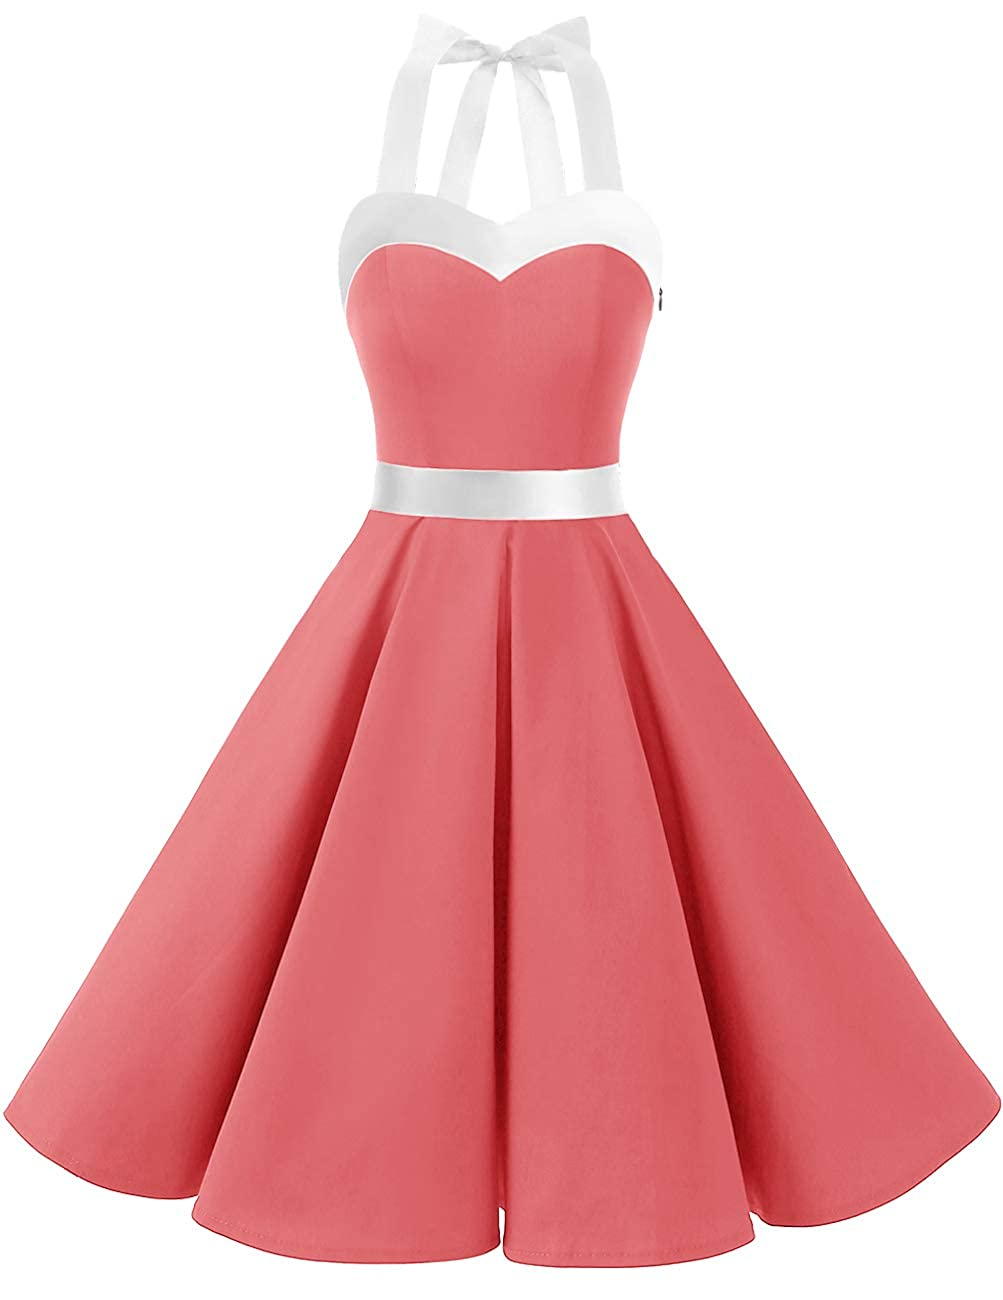 TALLA XXL. DRESSTELLS® Halter 50s Rockabilly Polka Dots Audrey Dress Retro Cocktail Dress Coral White XXL